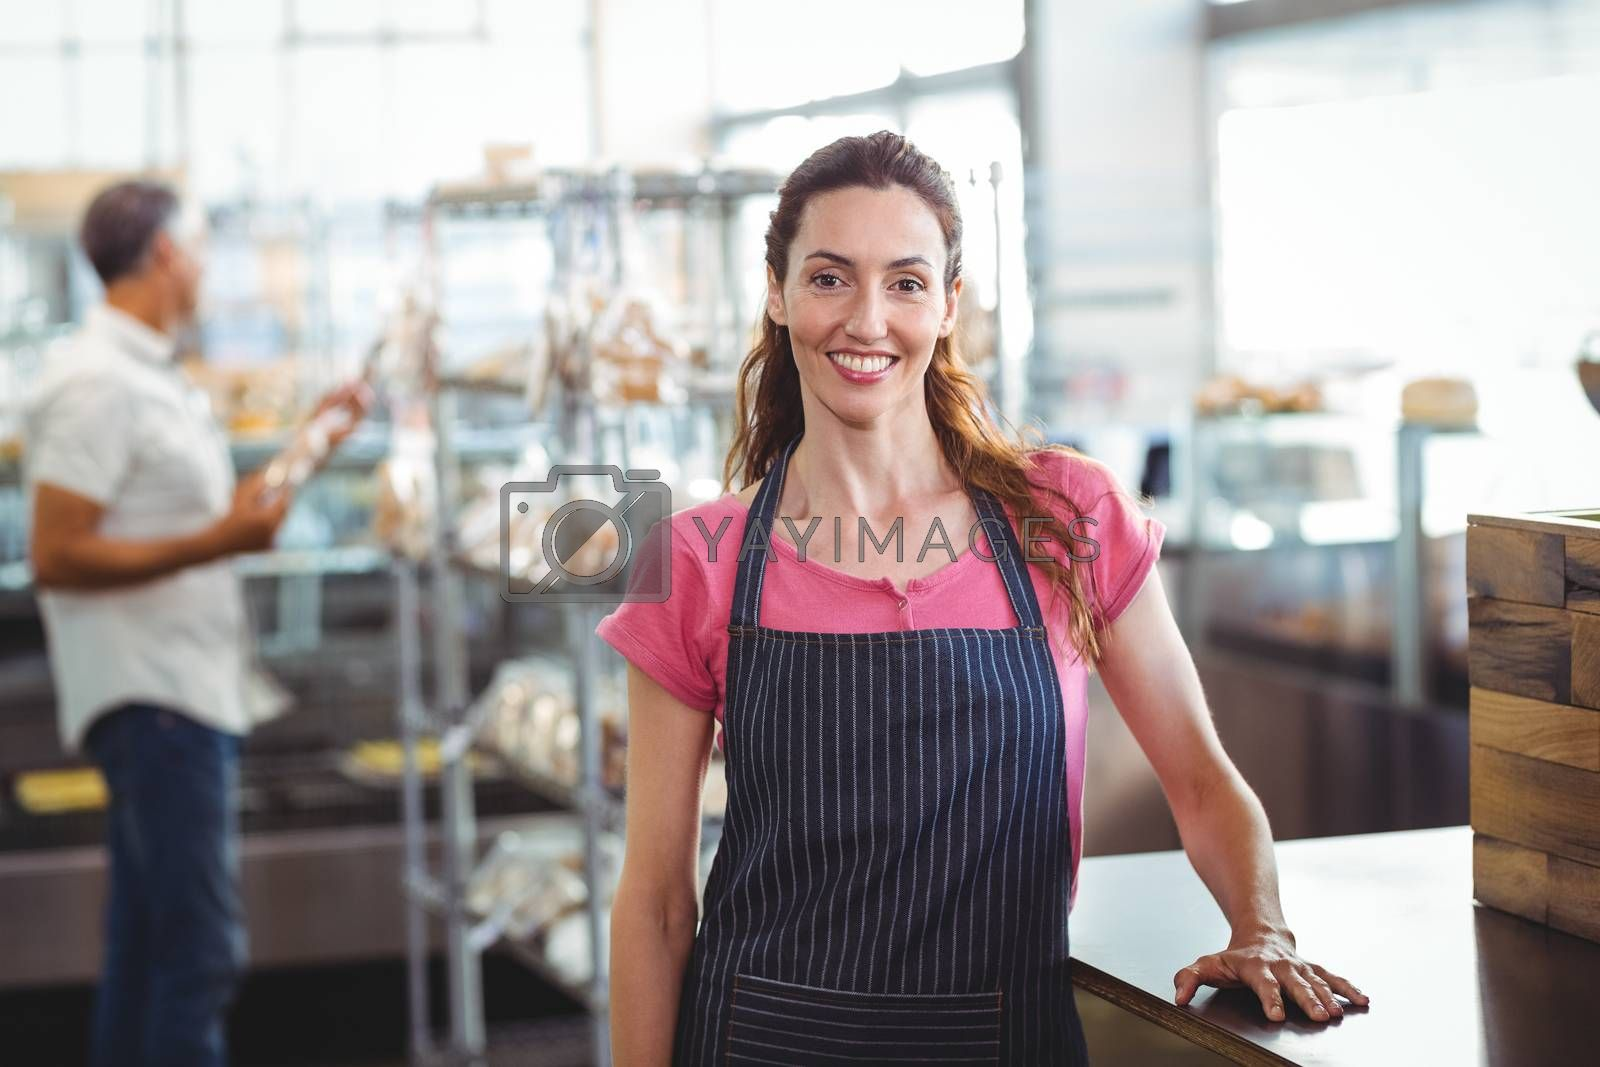 Royalty free image of Pretty waitress leaning on counter by Wavebreakmedia